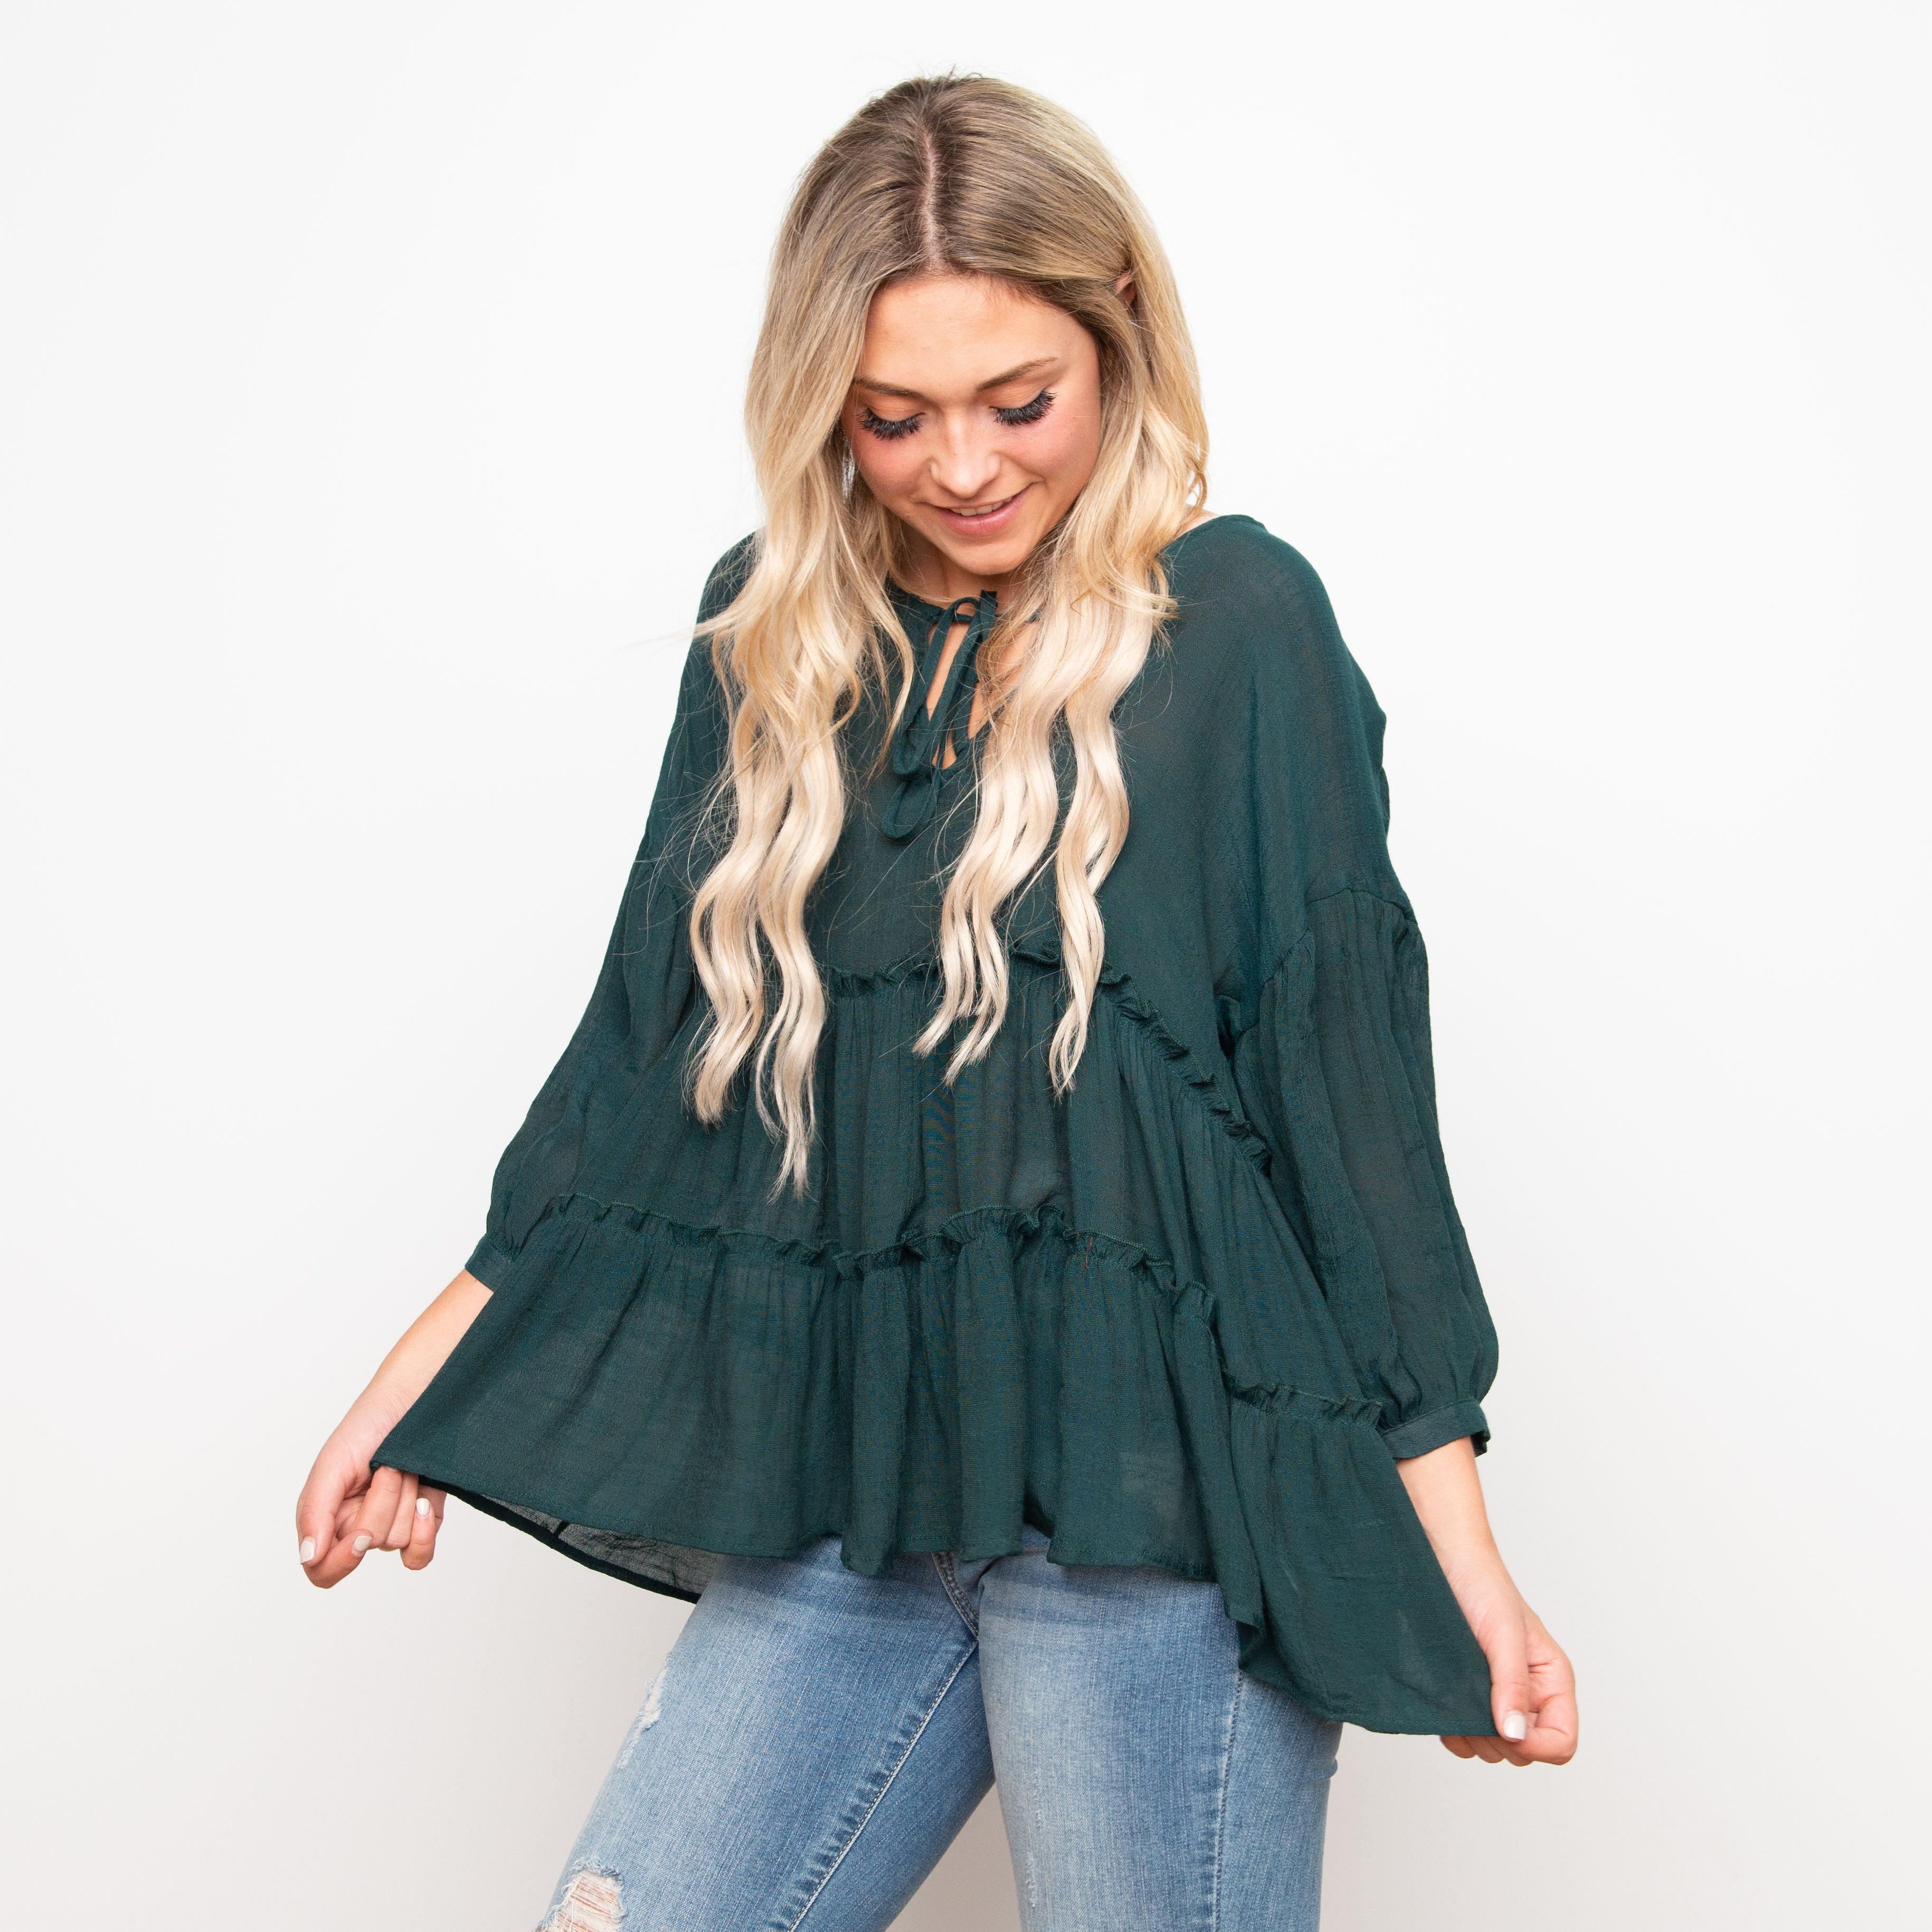 e9c29094877 Fraizer Tiered Top - Sea Green in 2019 | clothes | Tiered tops ...